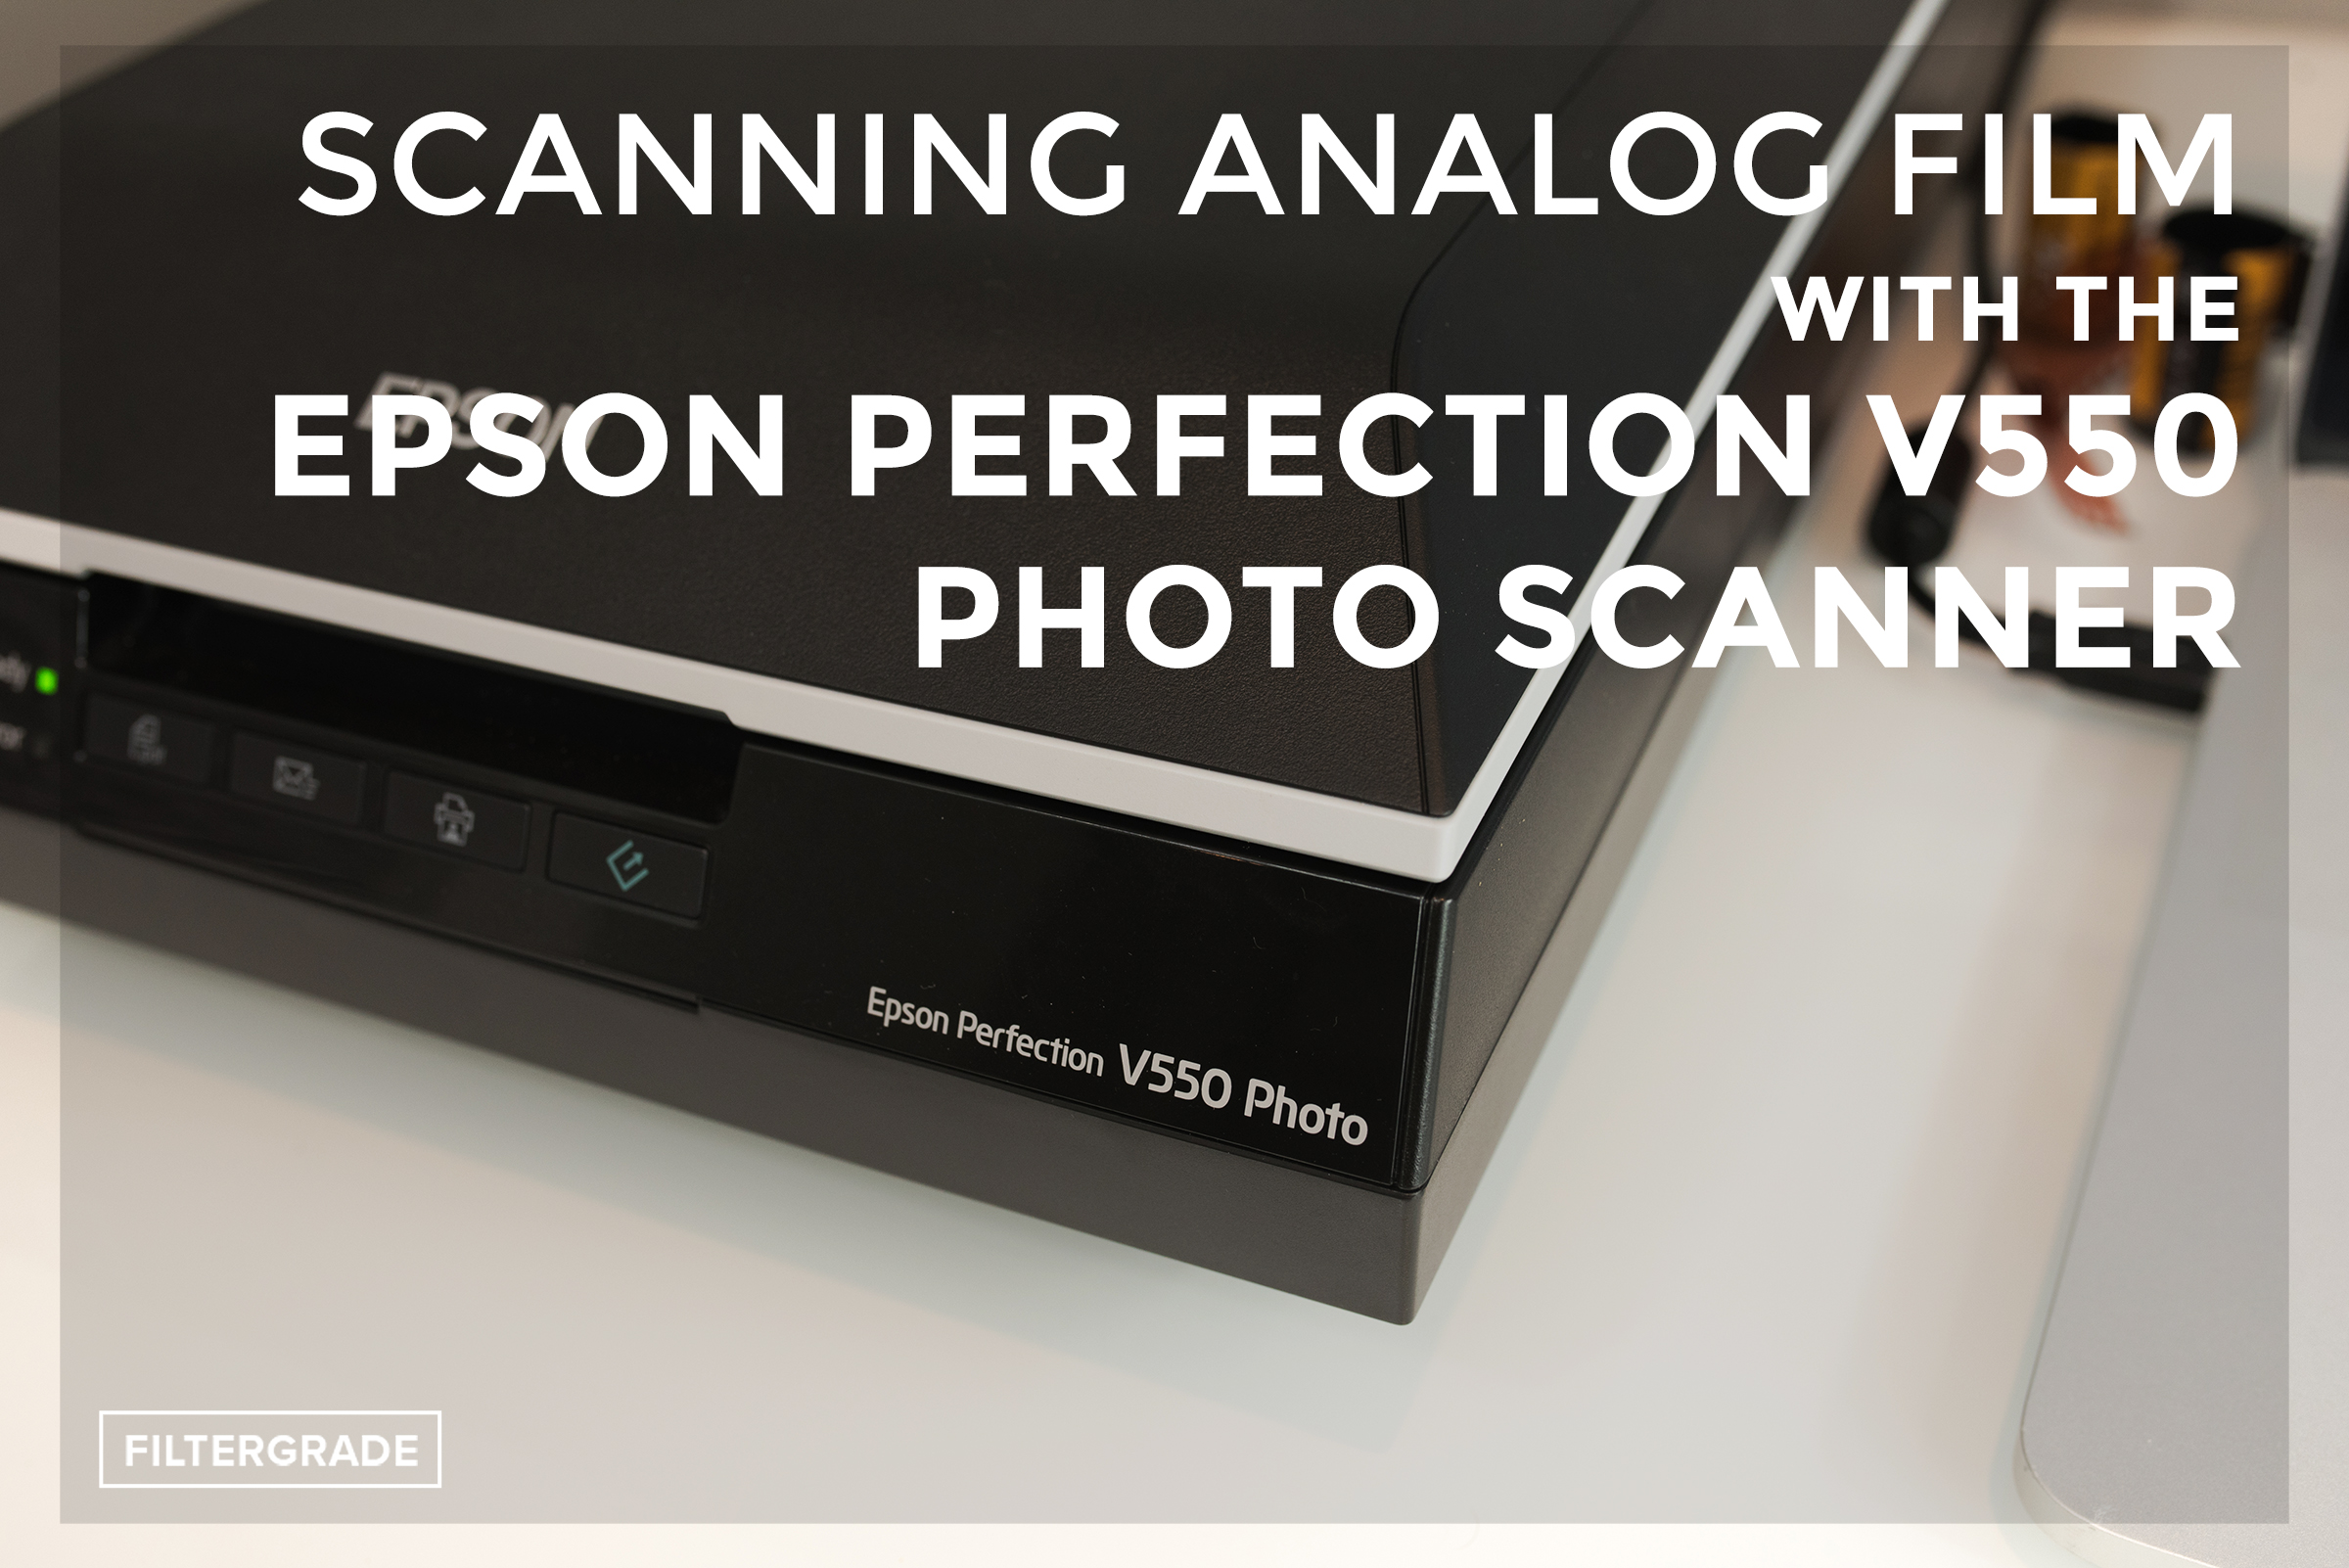 Scanning Analog Film with the Epson Perfection V550 Photo